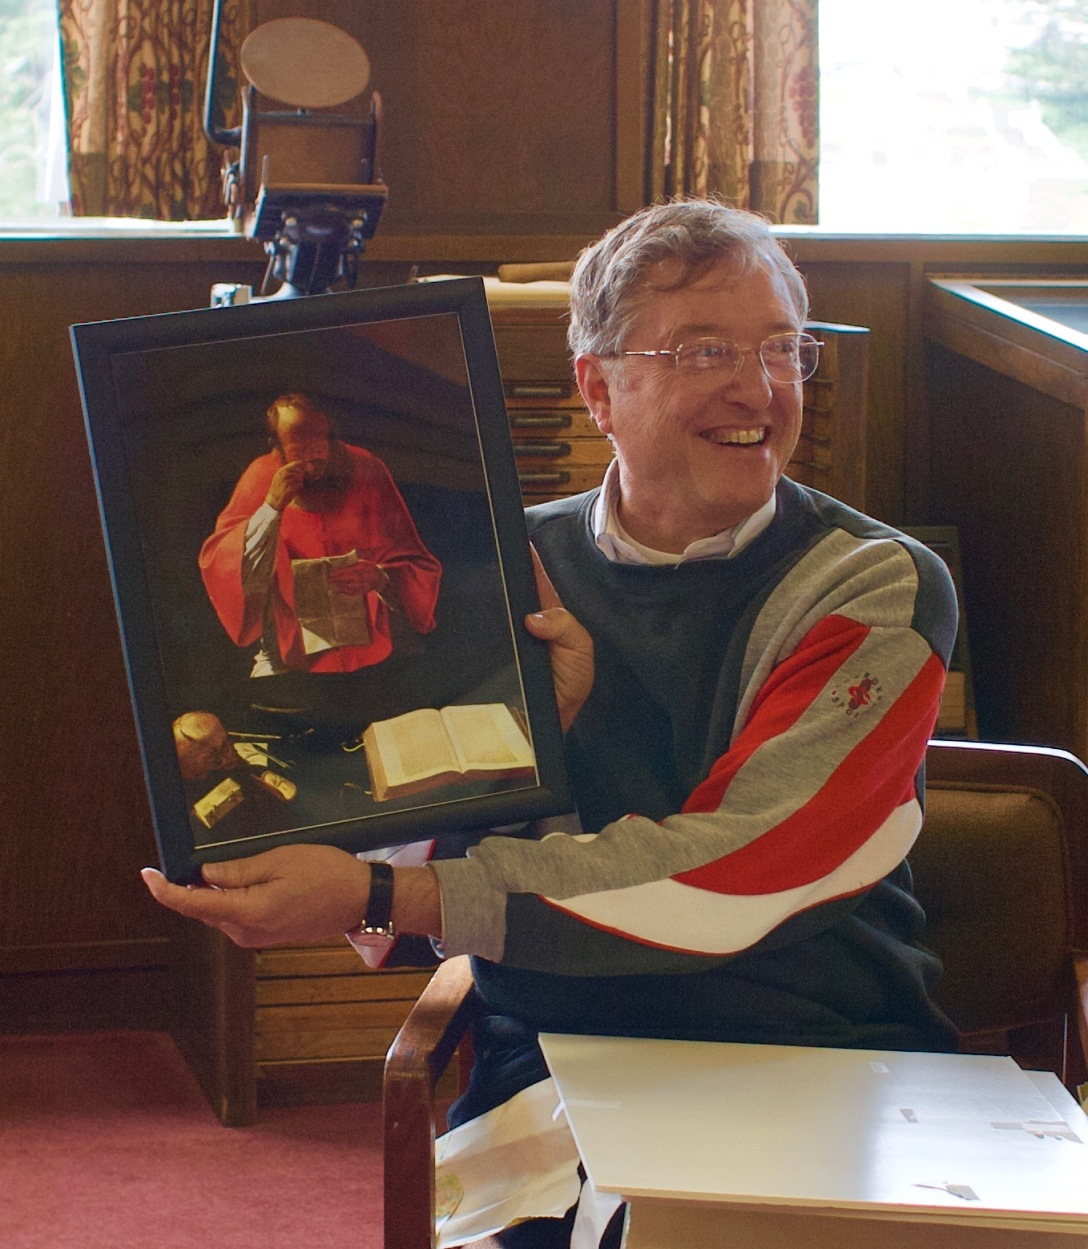 Eric ewen with portrait of st. jerome